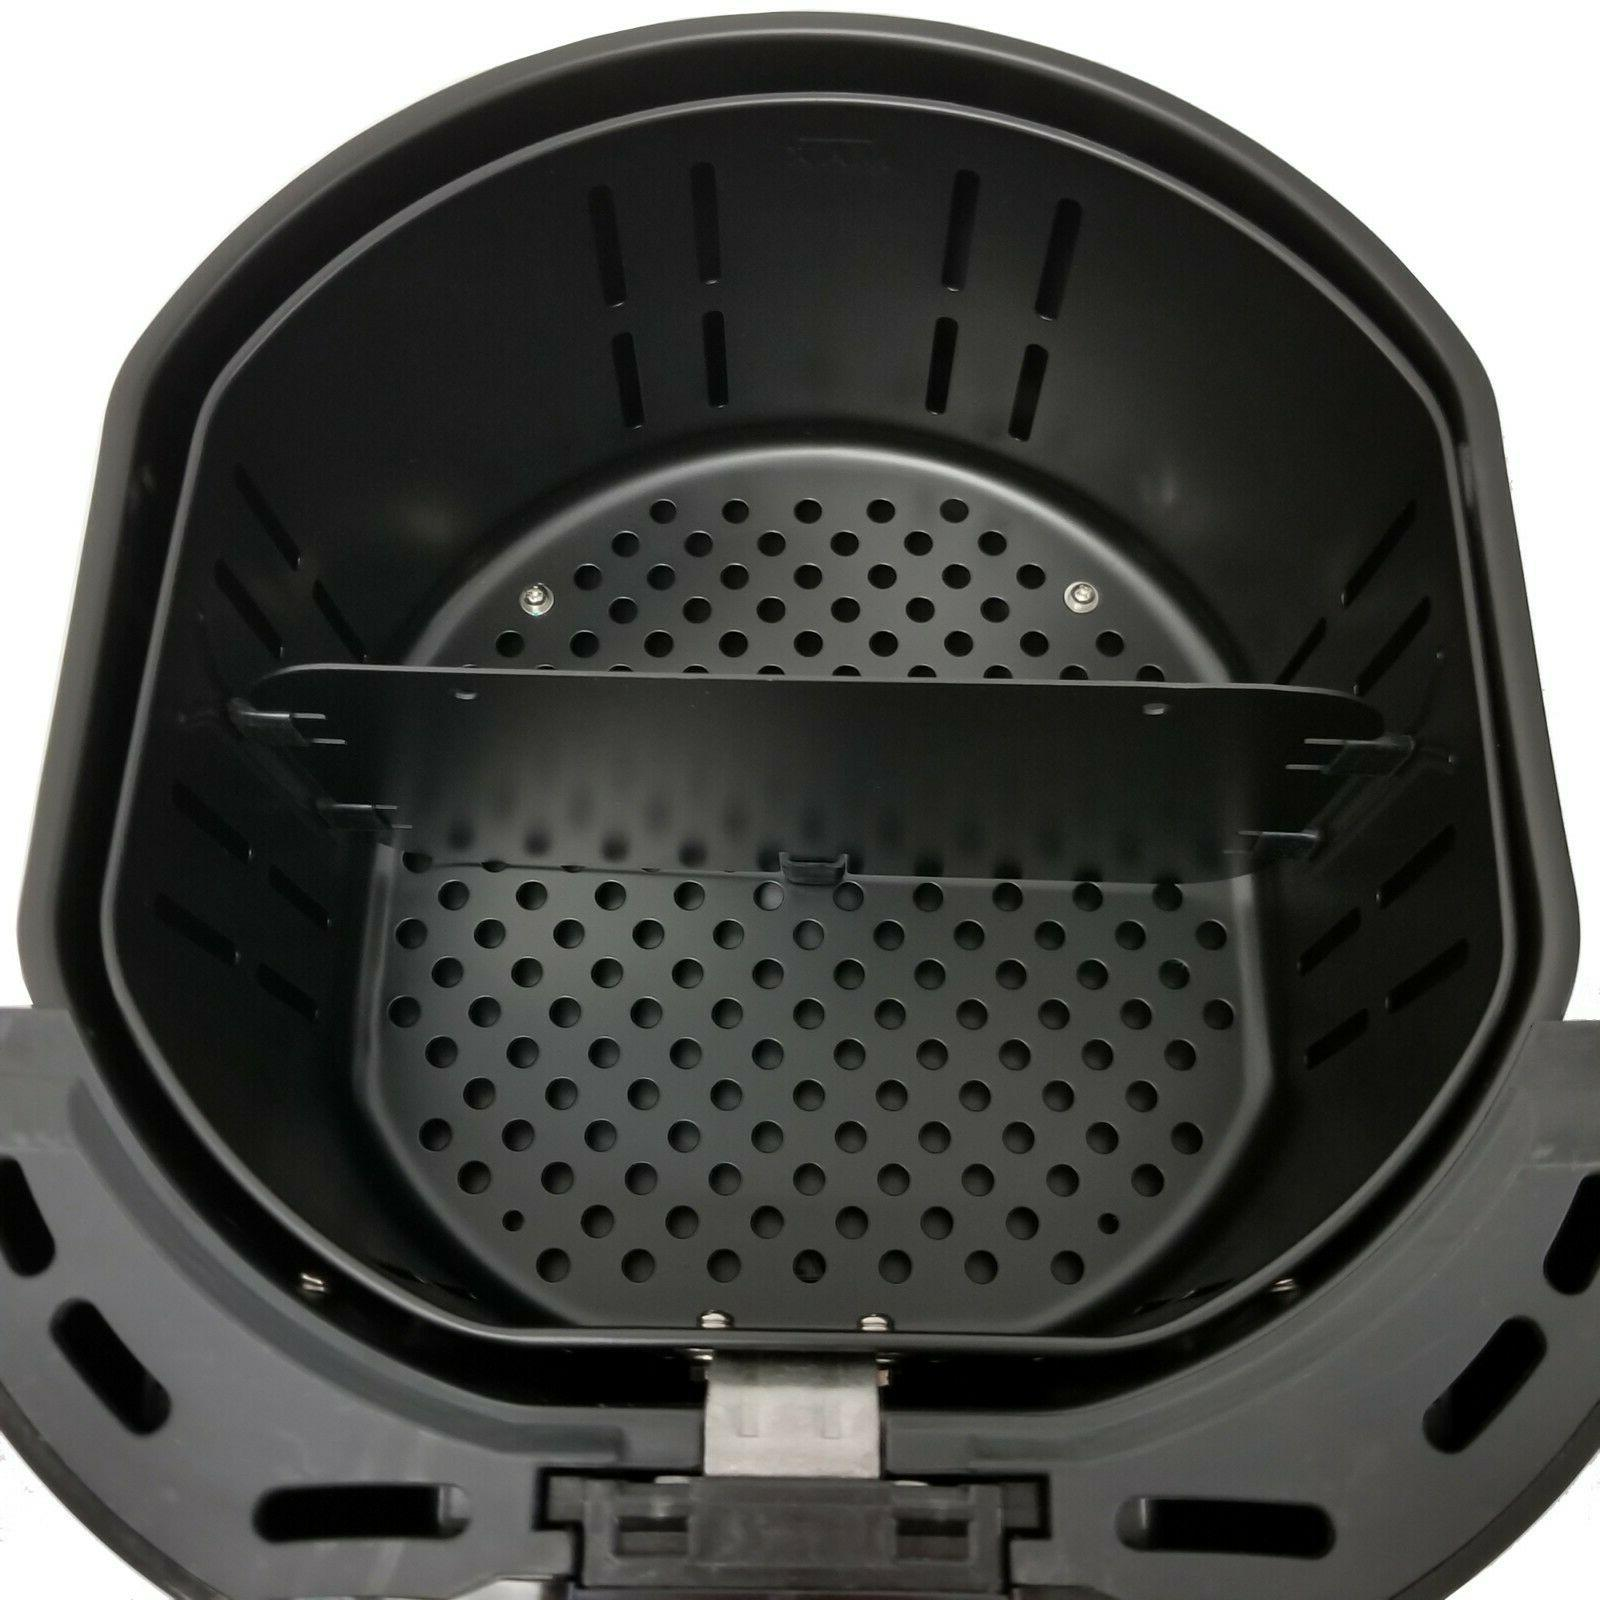 Air Accessories 5.8 4 fits 5.8 fry